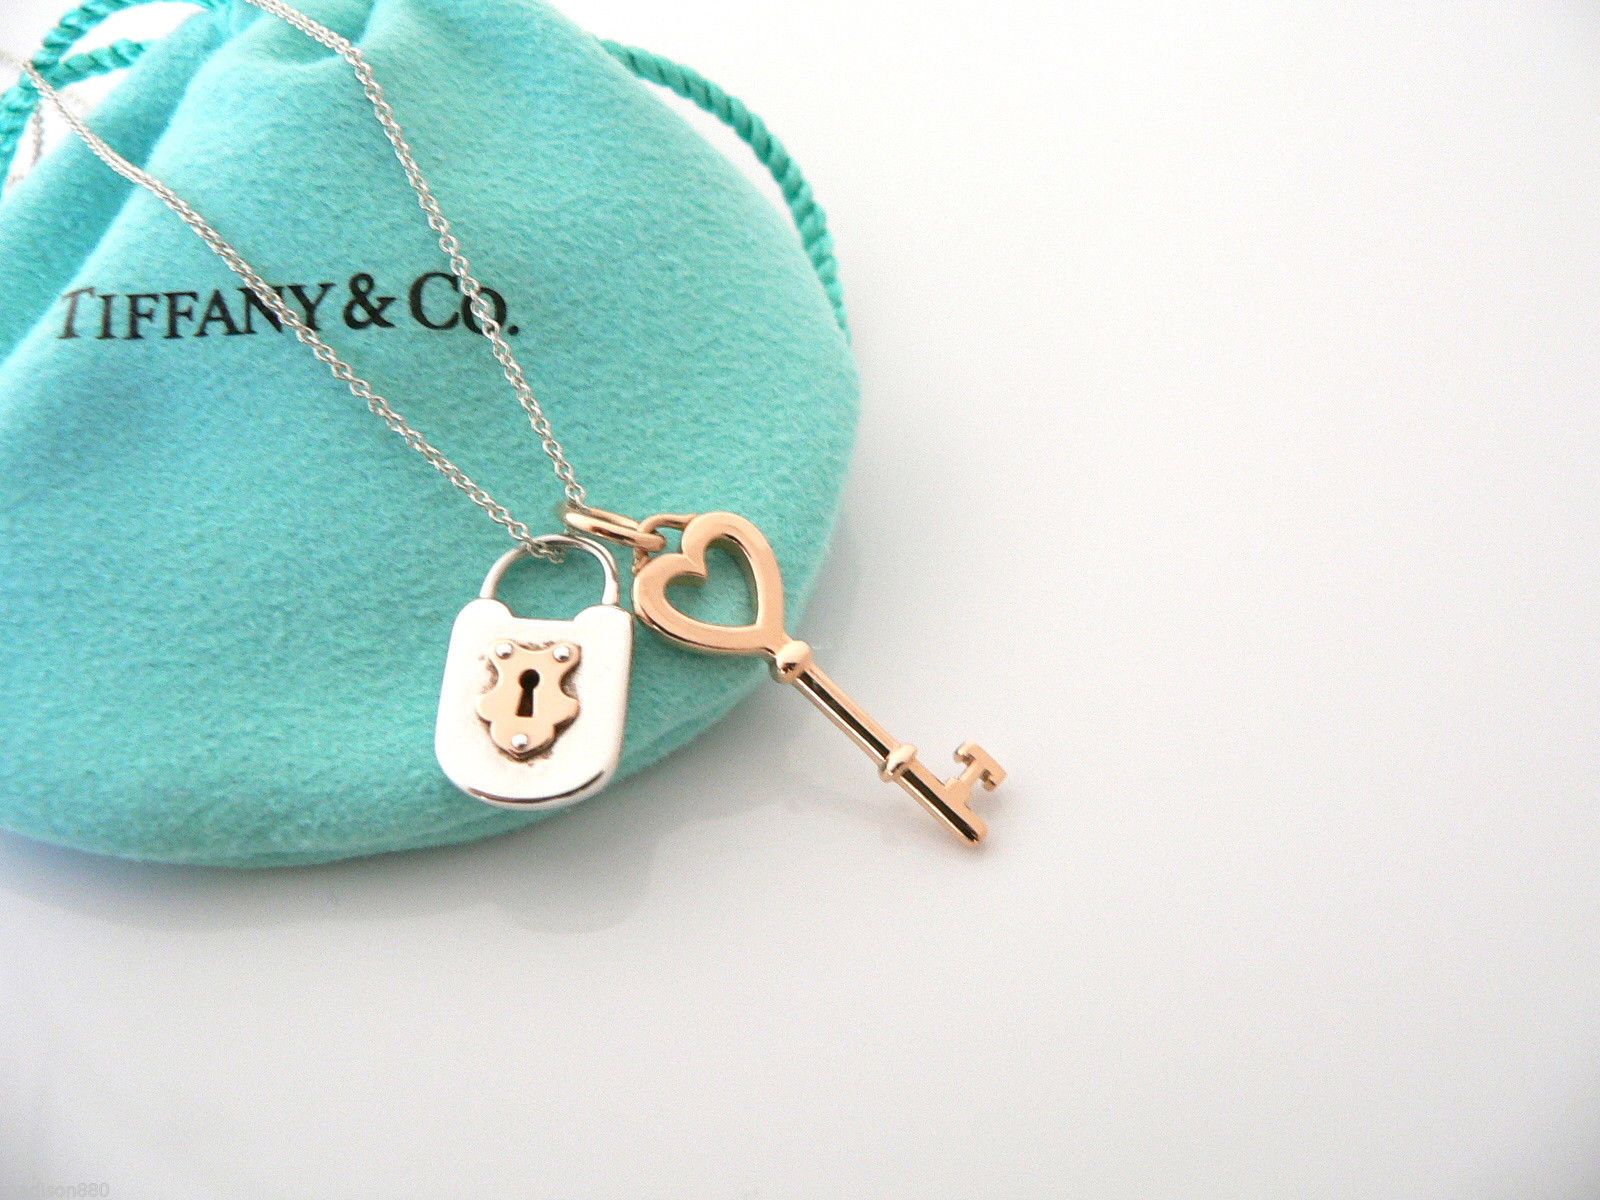 c6fe98aef This Tiffany & Co. Silver & 18K Rose Gold Heart Key Locks Necklace Pendant  Charm on eBay is perfect for daily wear, $948. I love this vintage necklace.